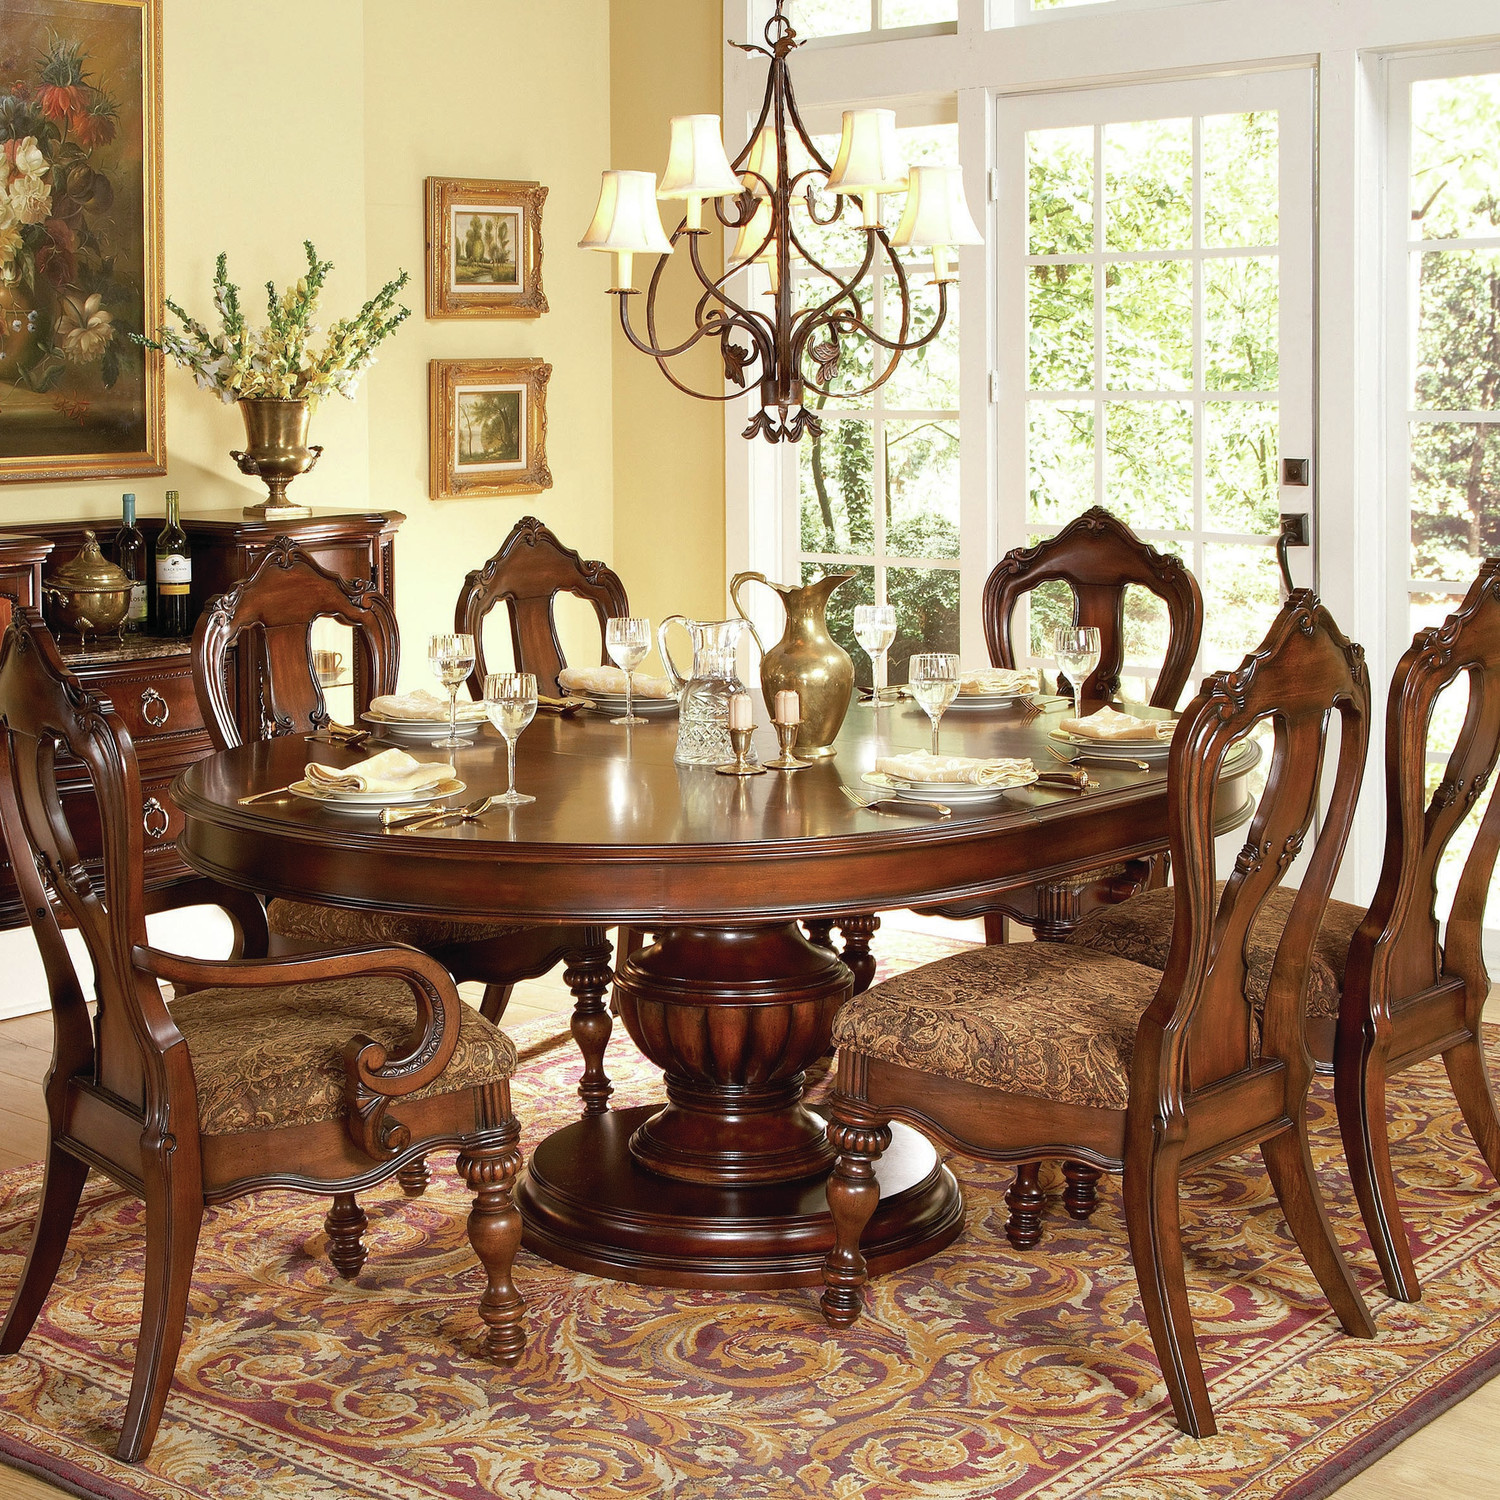 Dining Room Tables: Getting A Round Dining Room Table For 6 By Your Own